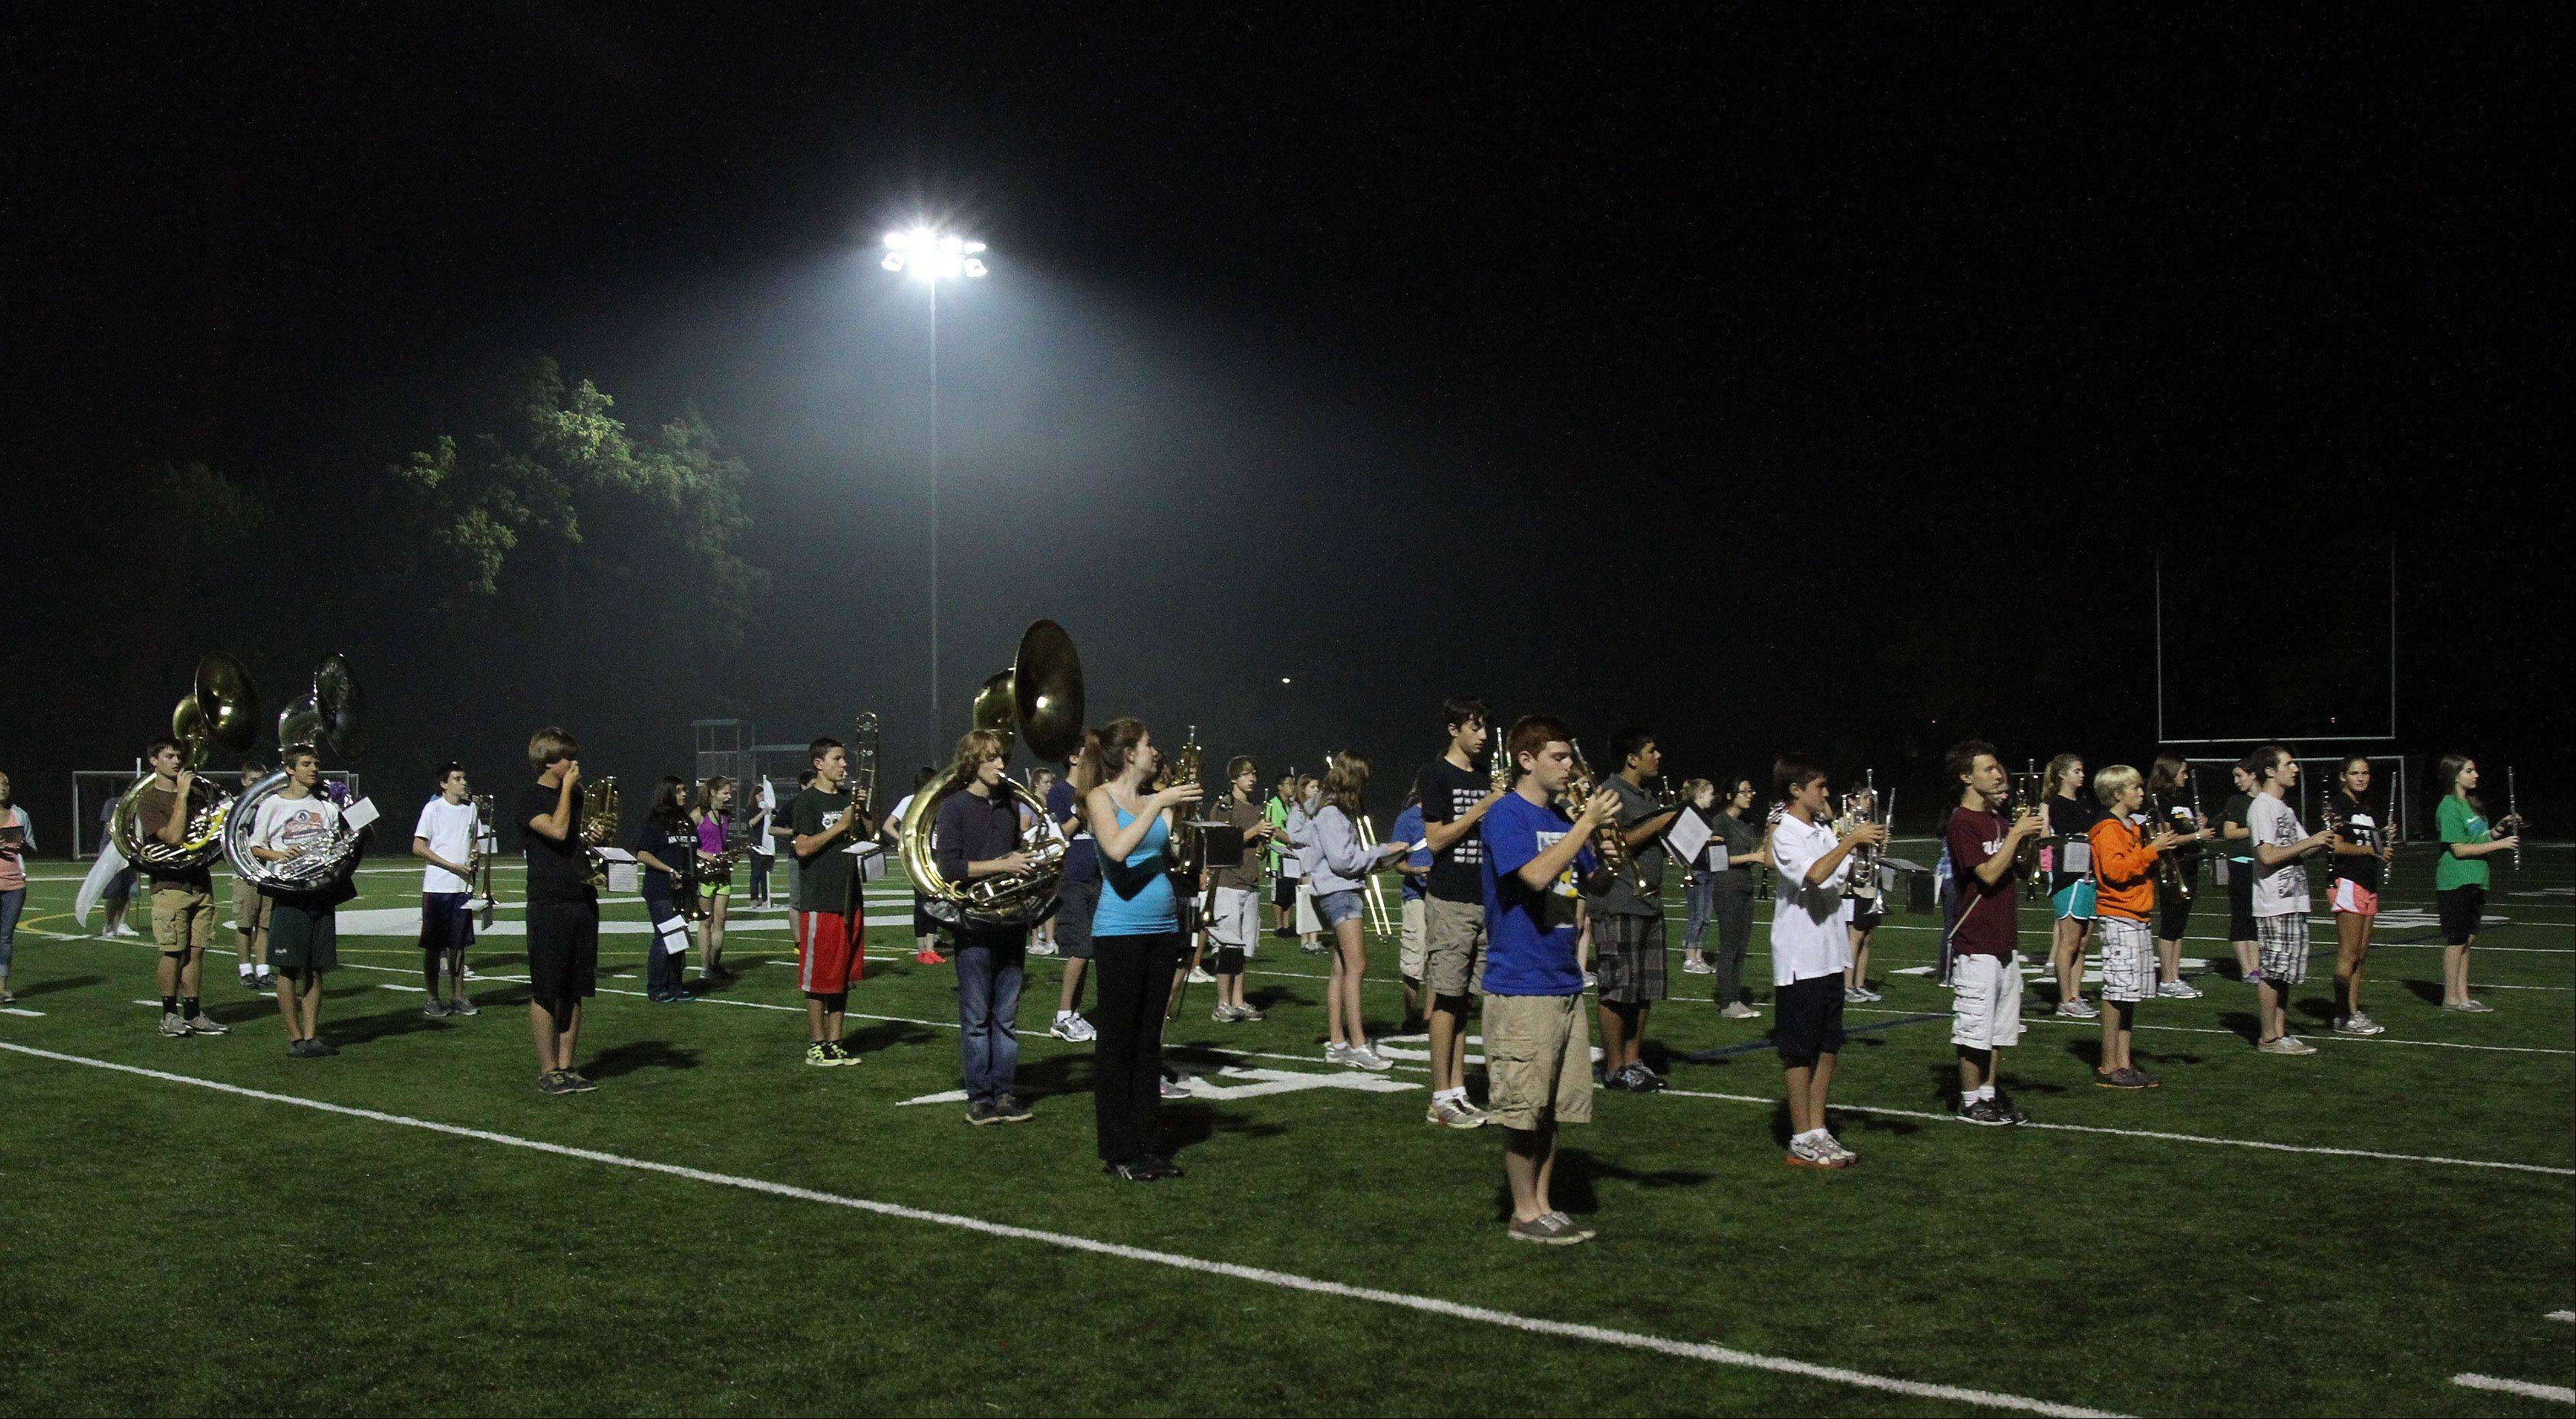 The Glenbard West High School marching band practices Monday night at Memorial Field in Glen Ellyn as officials tested the field's new lighting system for the first time.